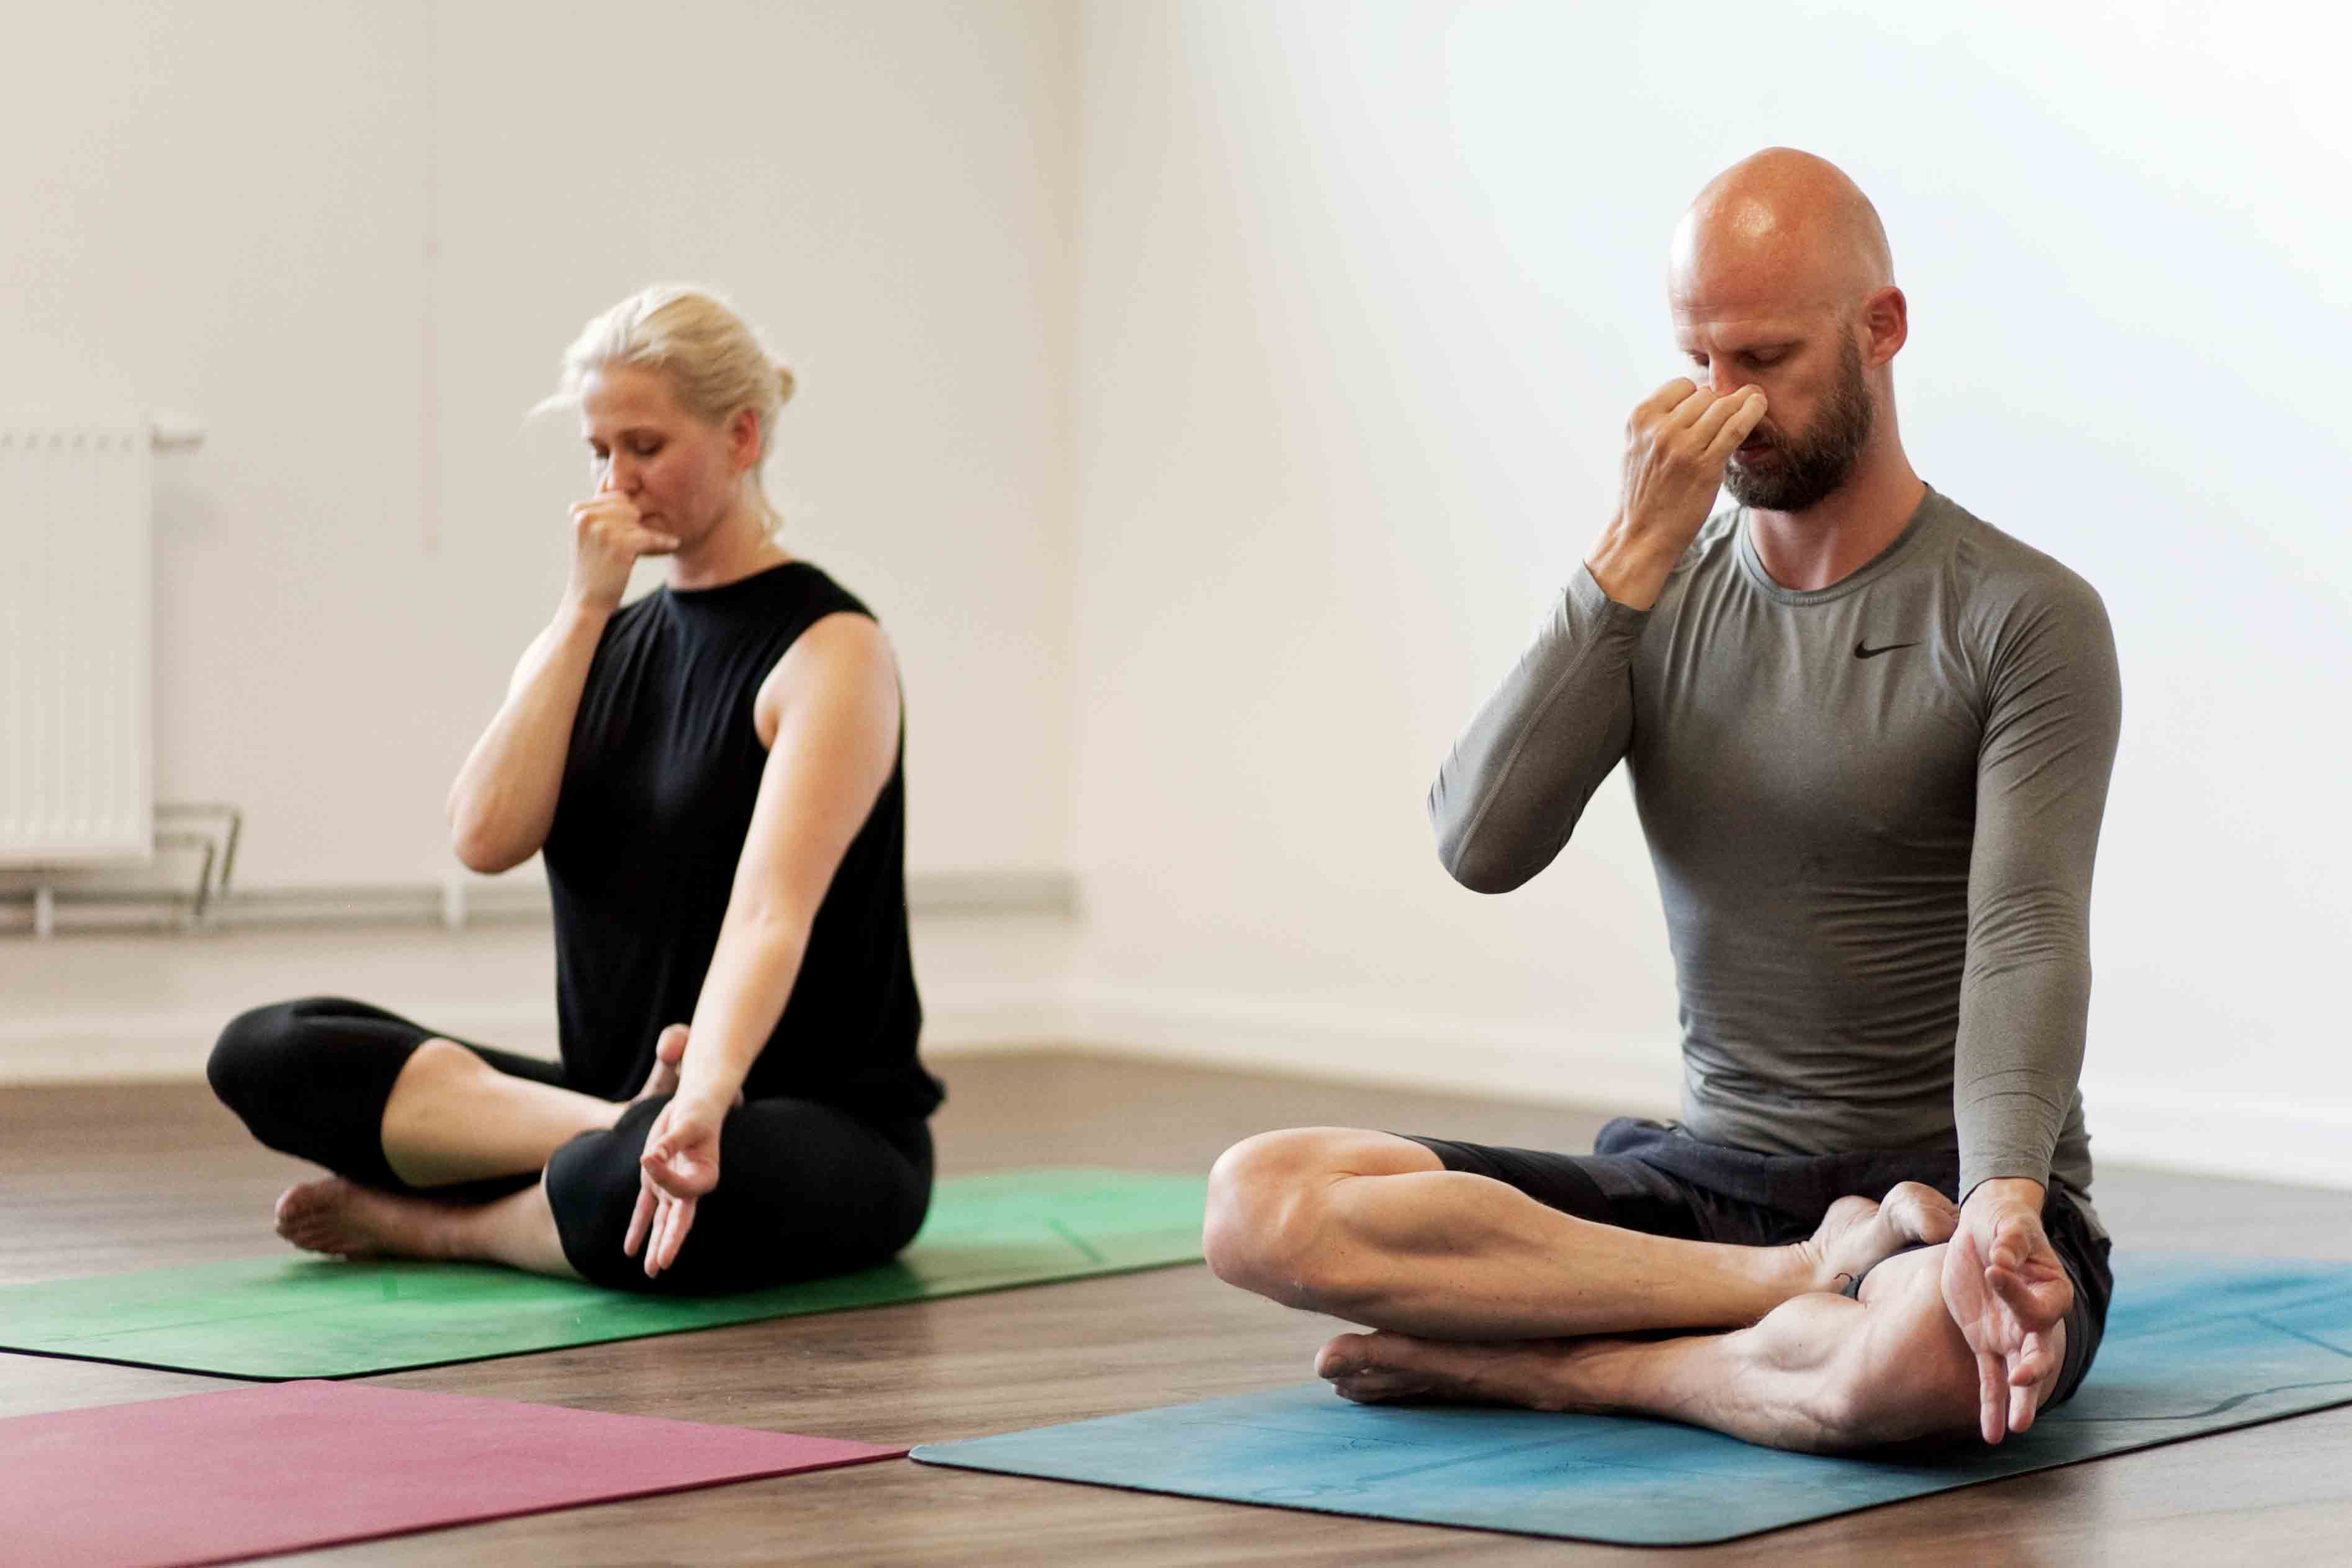 Did you know that Pranayama doesn't just relieve stress but also makes you stronger?